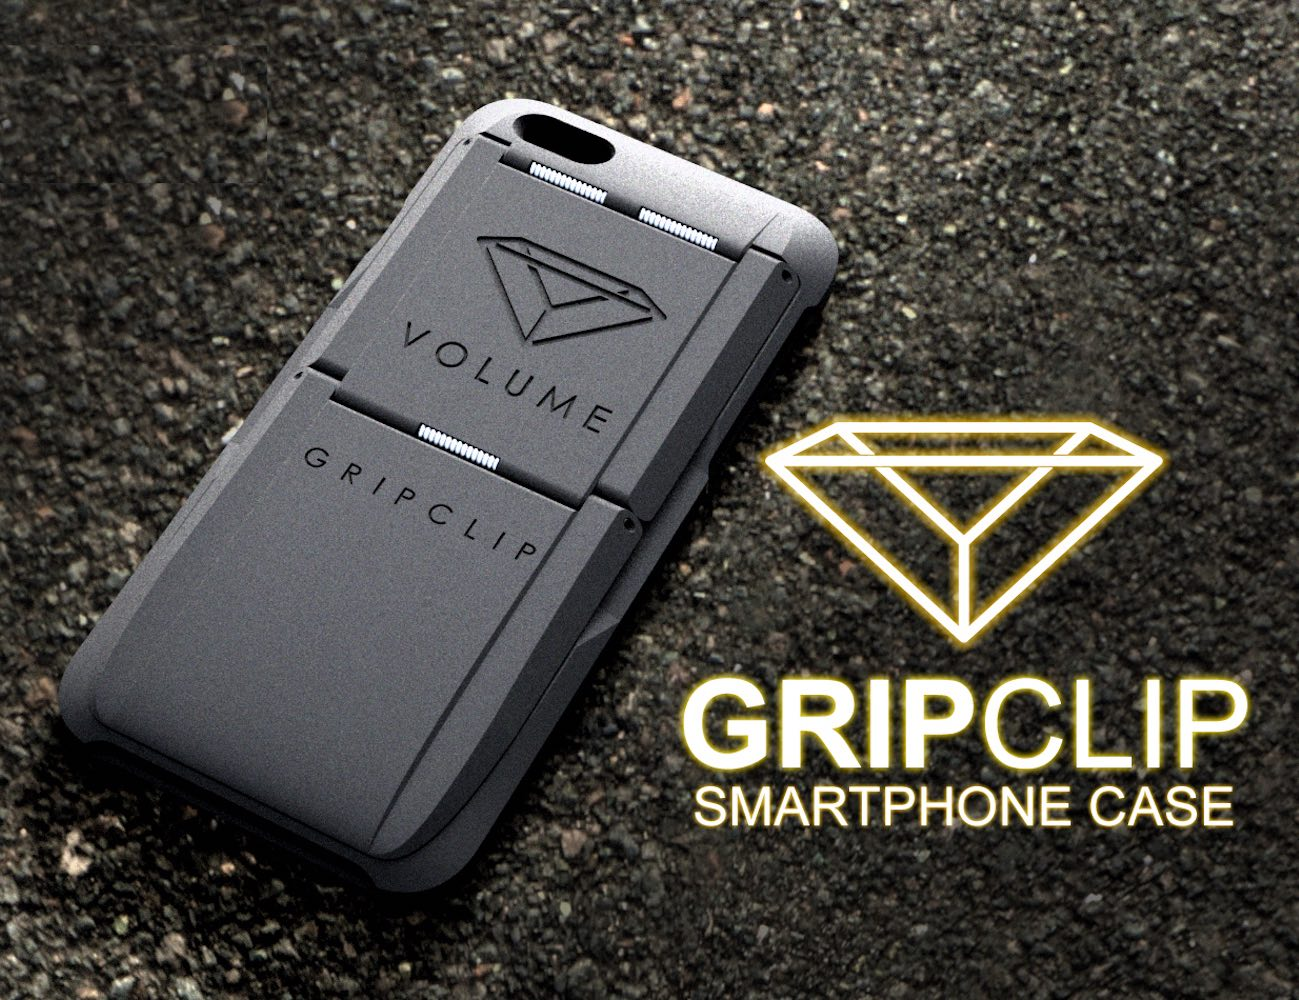 Grip Clip – The World's Most Useful iPhone Case